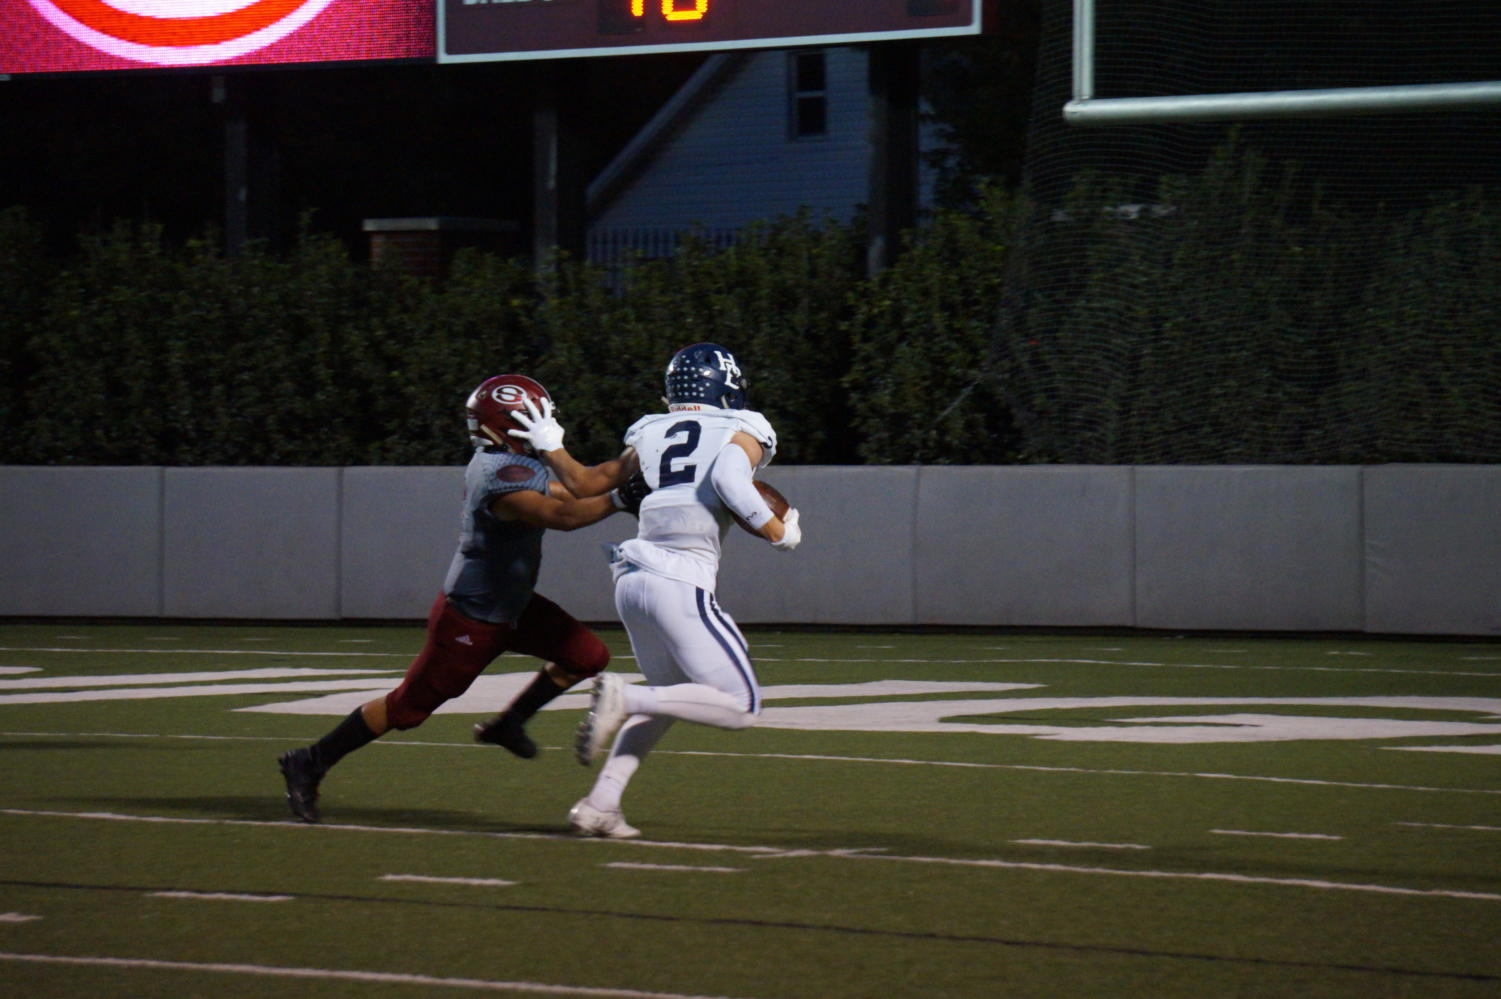 Junior receiver Hunter Wood stiff arms a Bulldog defender to score a touchdown Oct. 5.